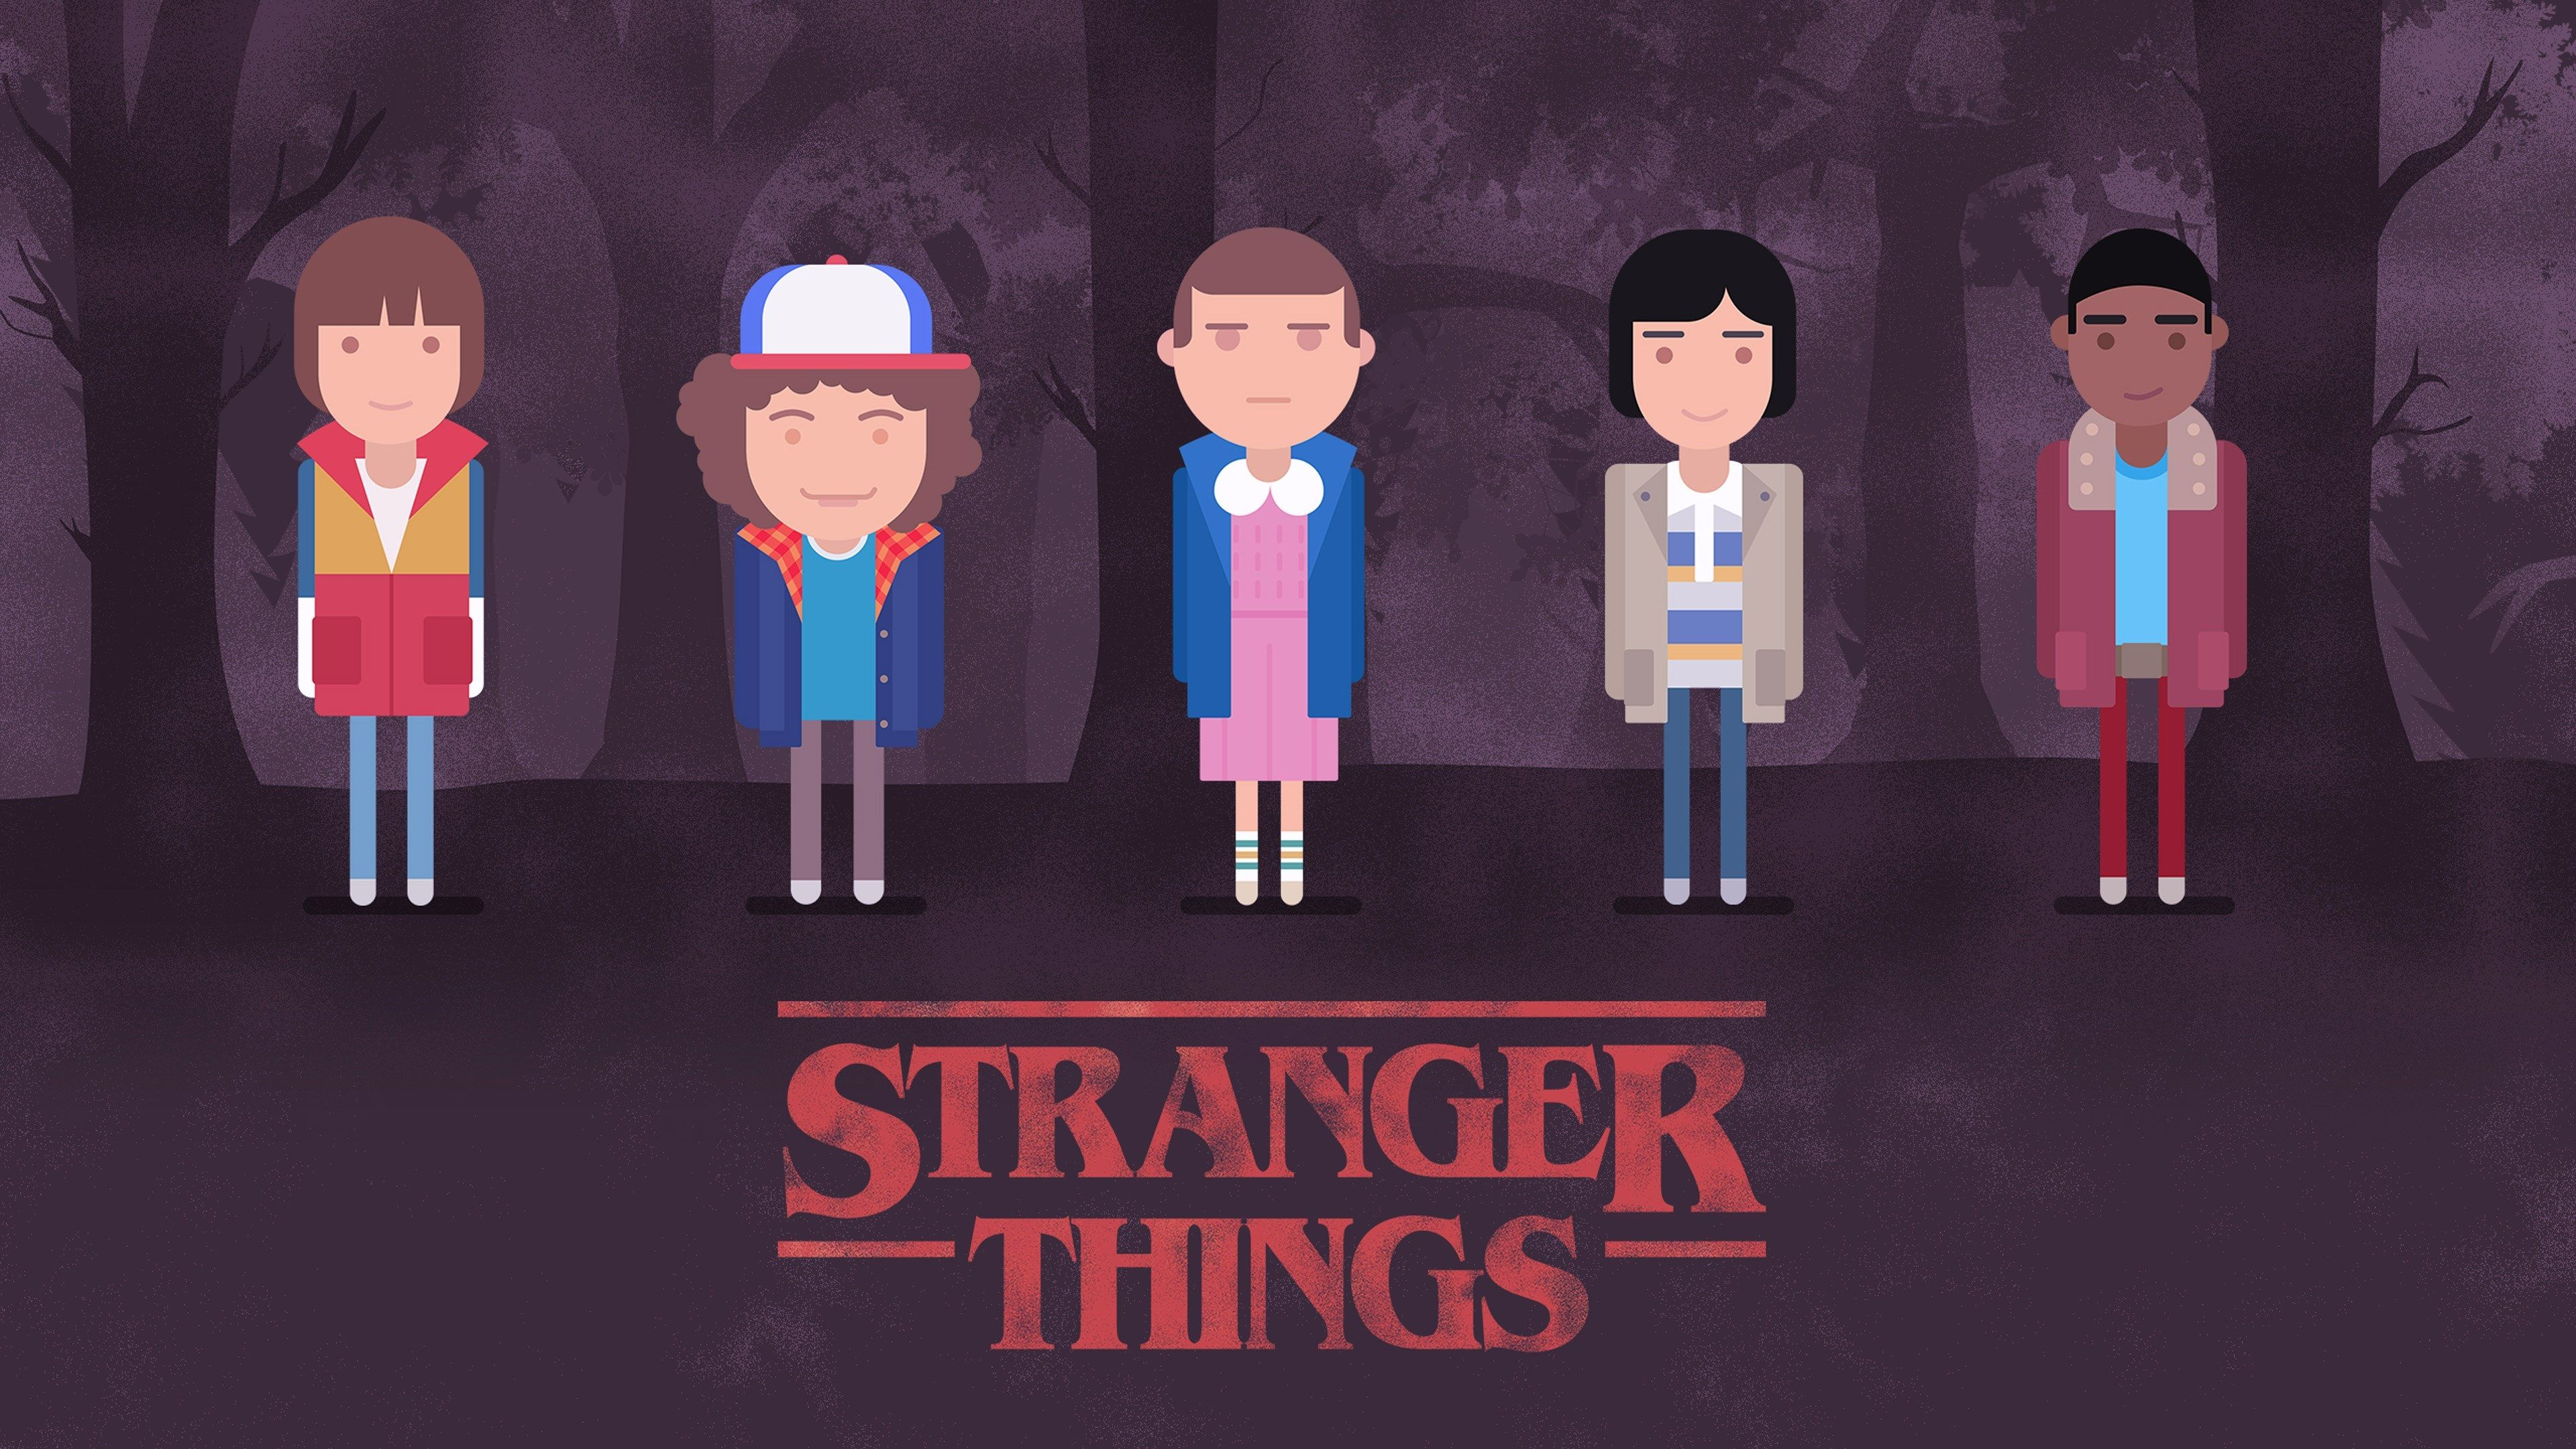 3840x2160 Stranger Things 4k Amazing Wallpaper Hd Stranger Things Wallpaper Stranger Things Art Stranger Things Characters